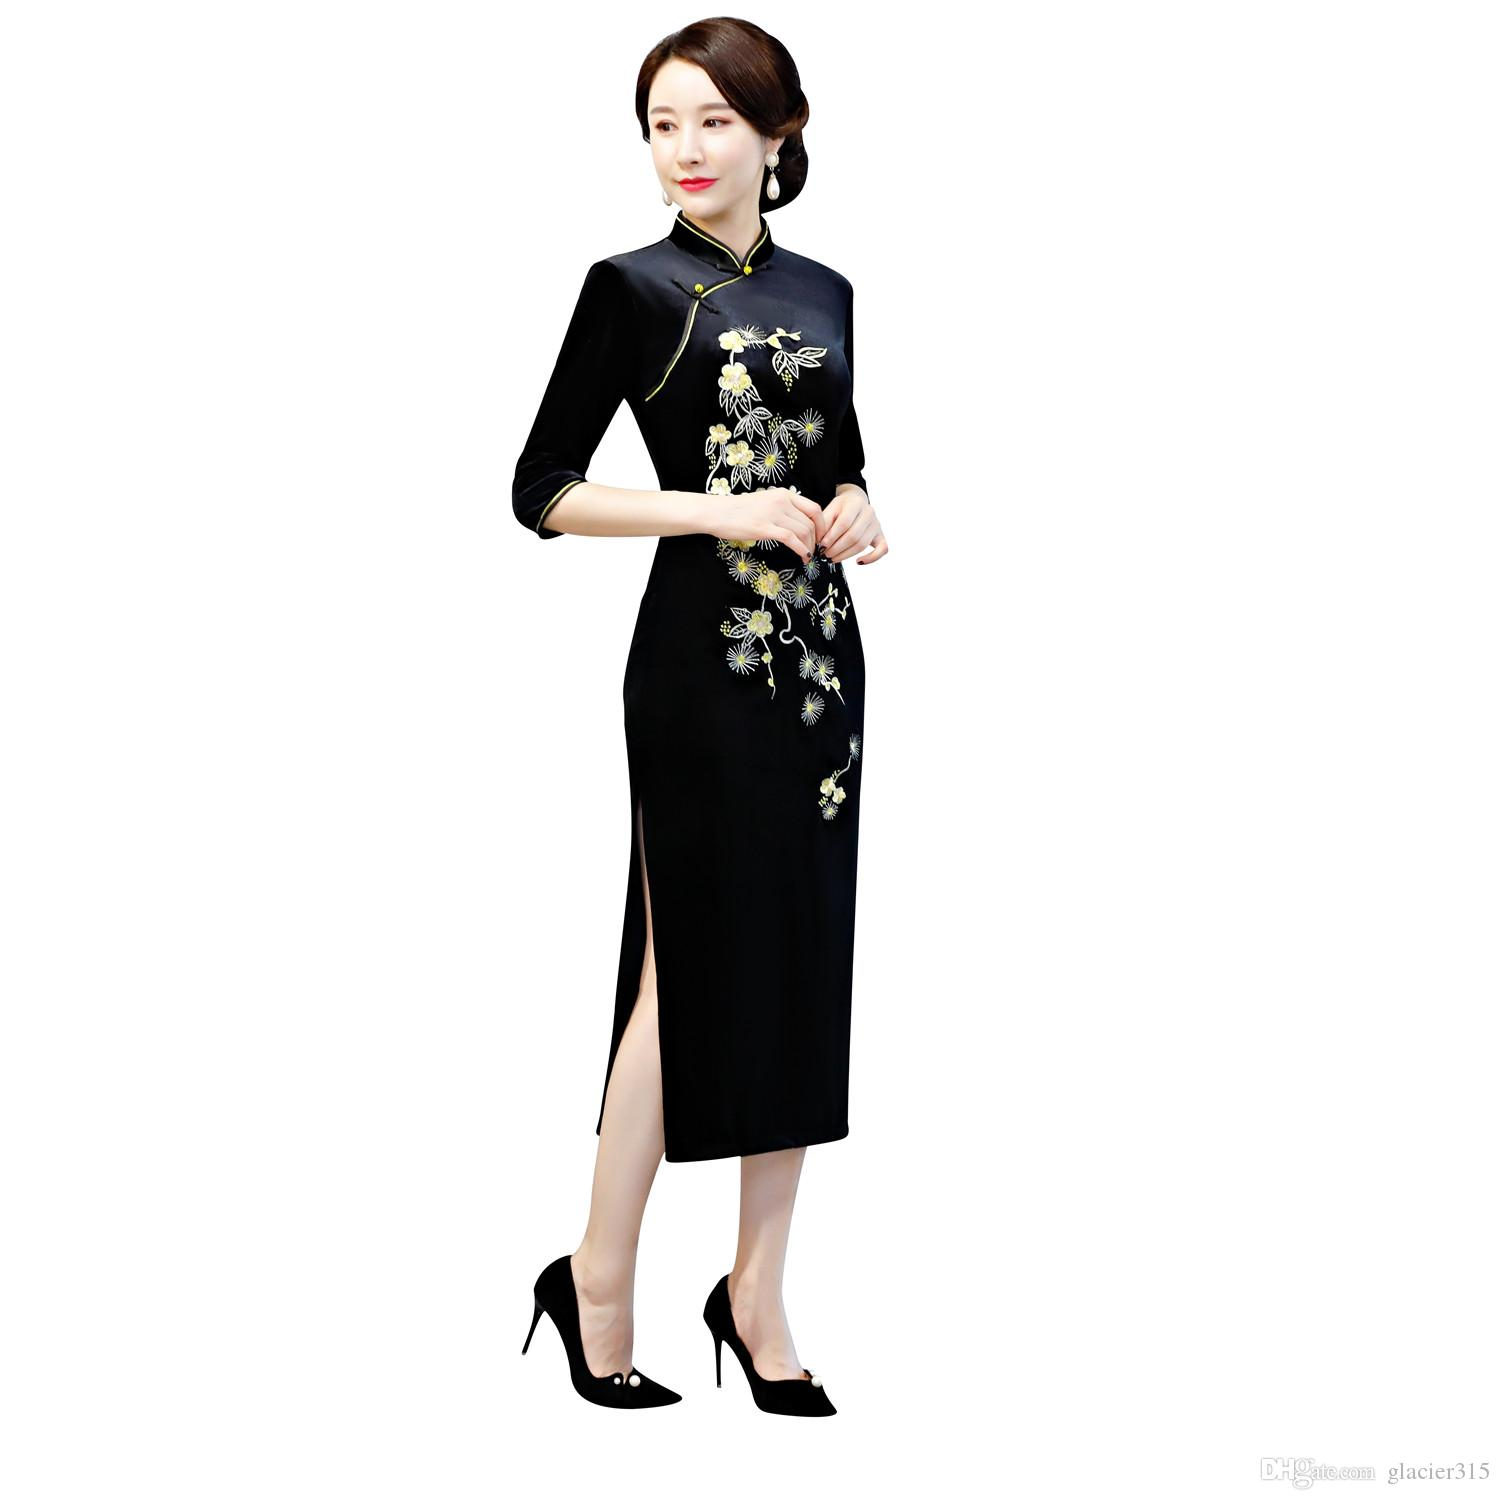 248148fe0 Shanghai Story Flower Embroidery Velvet Chinese Dress 3/4 Sleeve Qipao  Chinese Traditional Clothing For Women Long Cheongsam Lace Gowns Qi Pao  From ...